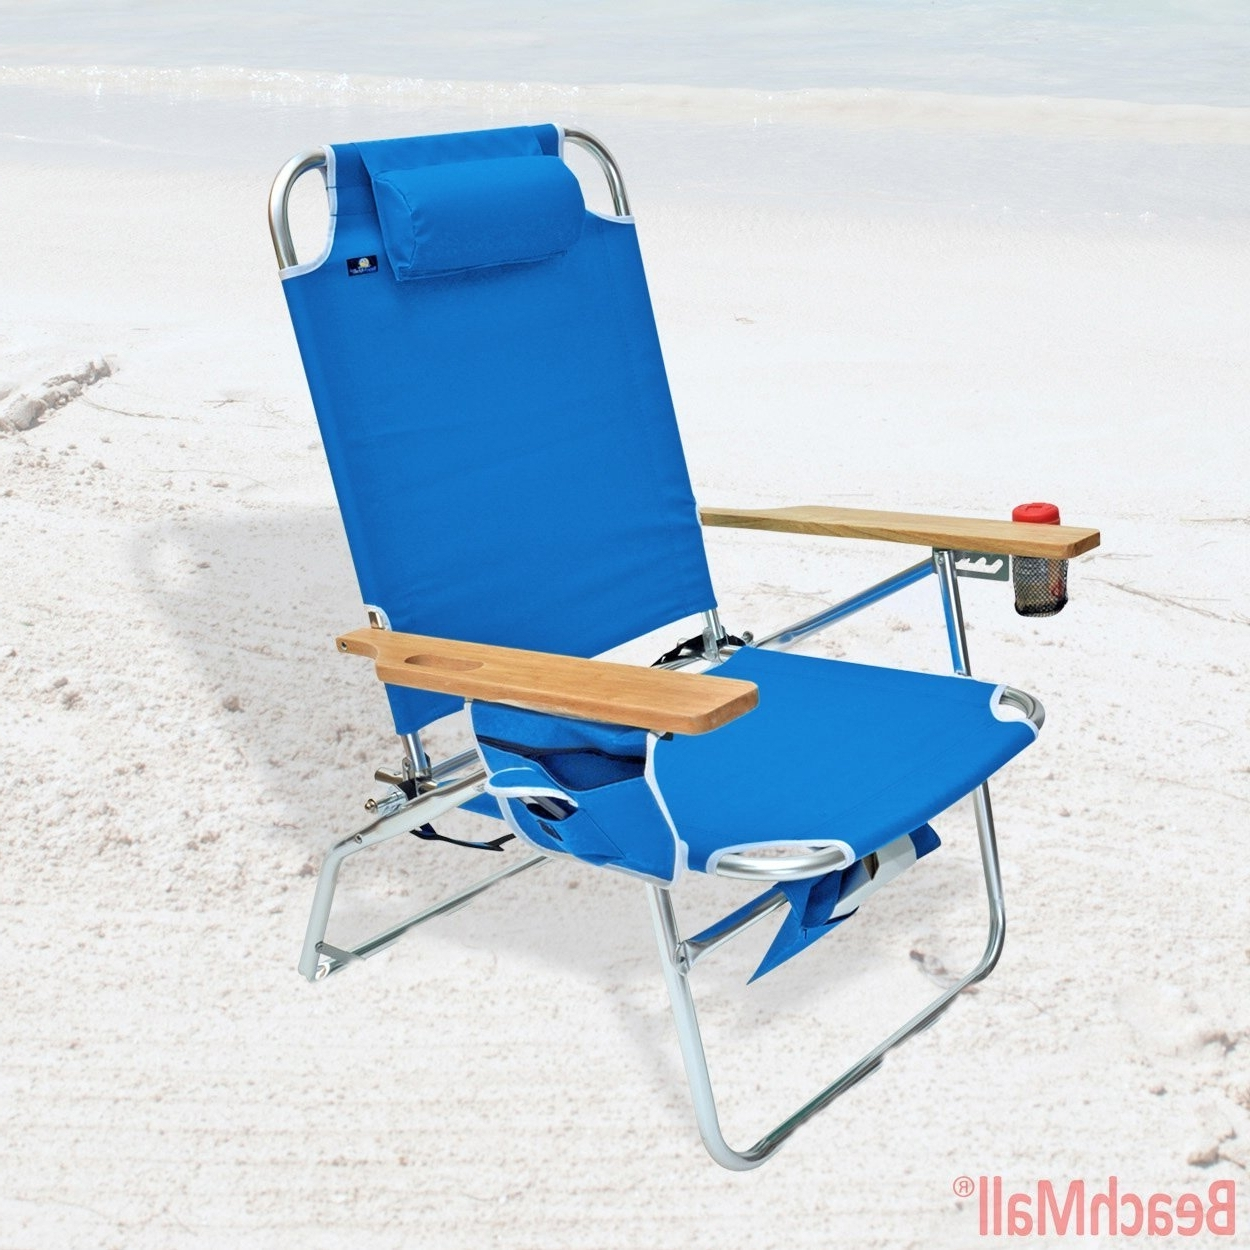 2018 Heavy Duty Beach Lounge Chairs • Lounge Chairs Ideas Regarding Heavy Duty Chaise Lounge Chairs (View 8 of 15)